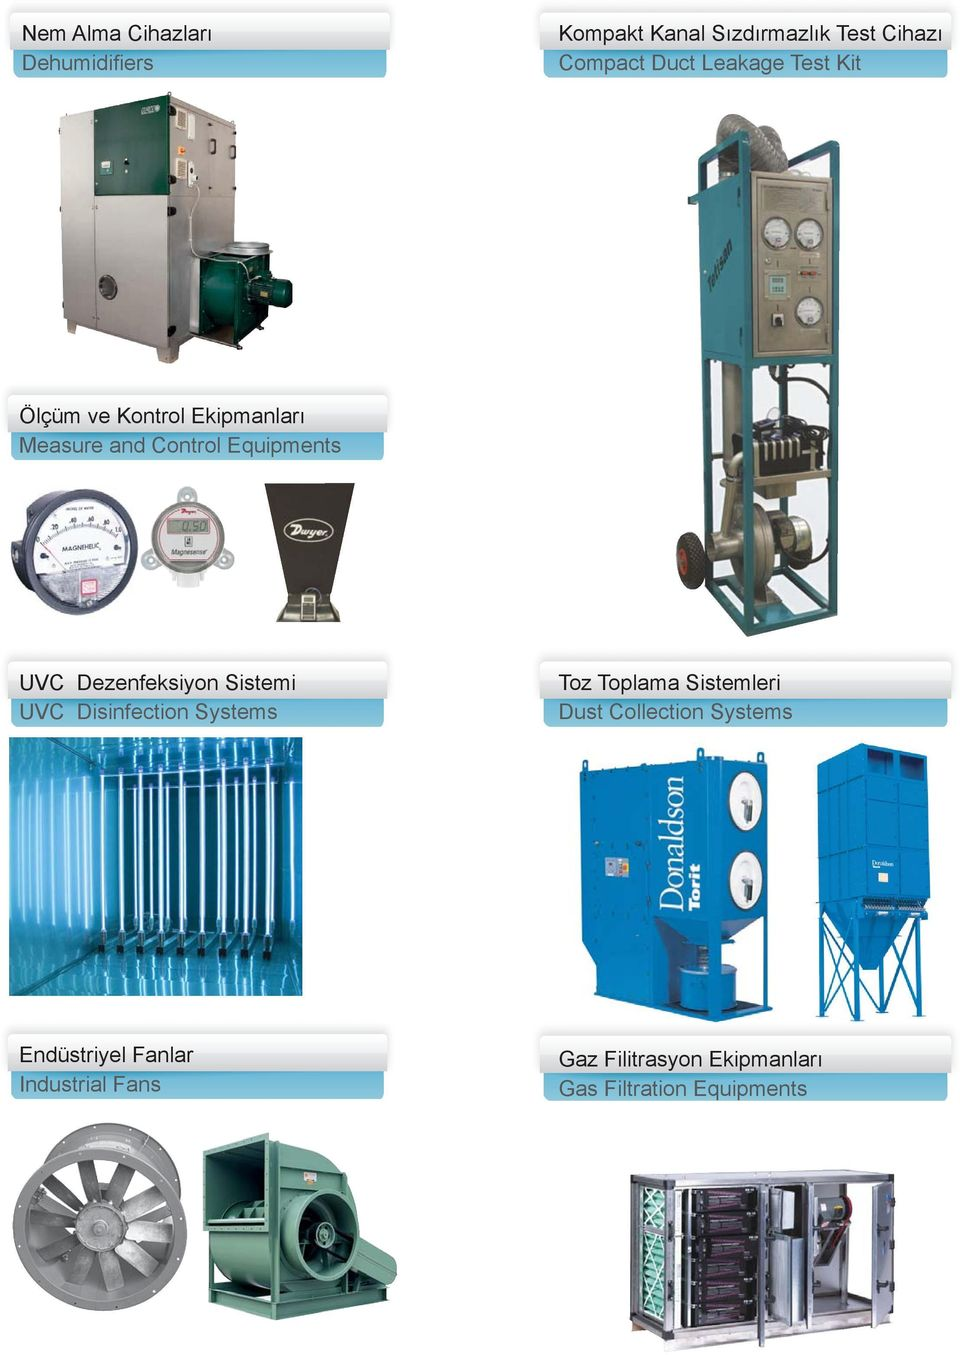 Dezenfeksiyon Sistemi UVC Disinfection Systems Toz Toplama Sistemleri Dust Collection